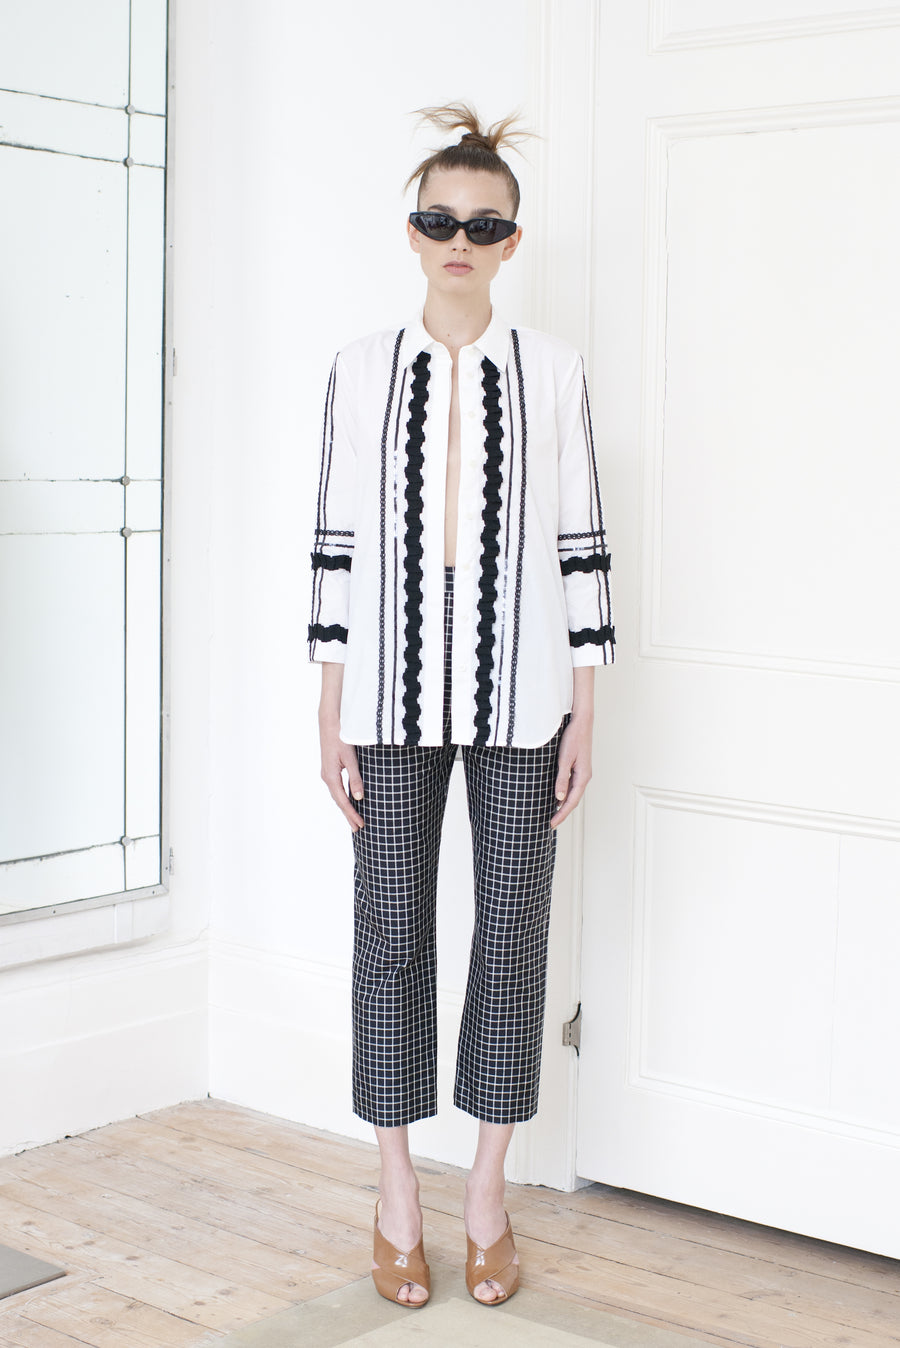 SS2016 / Look 8